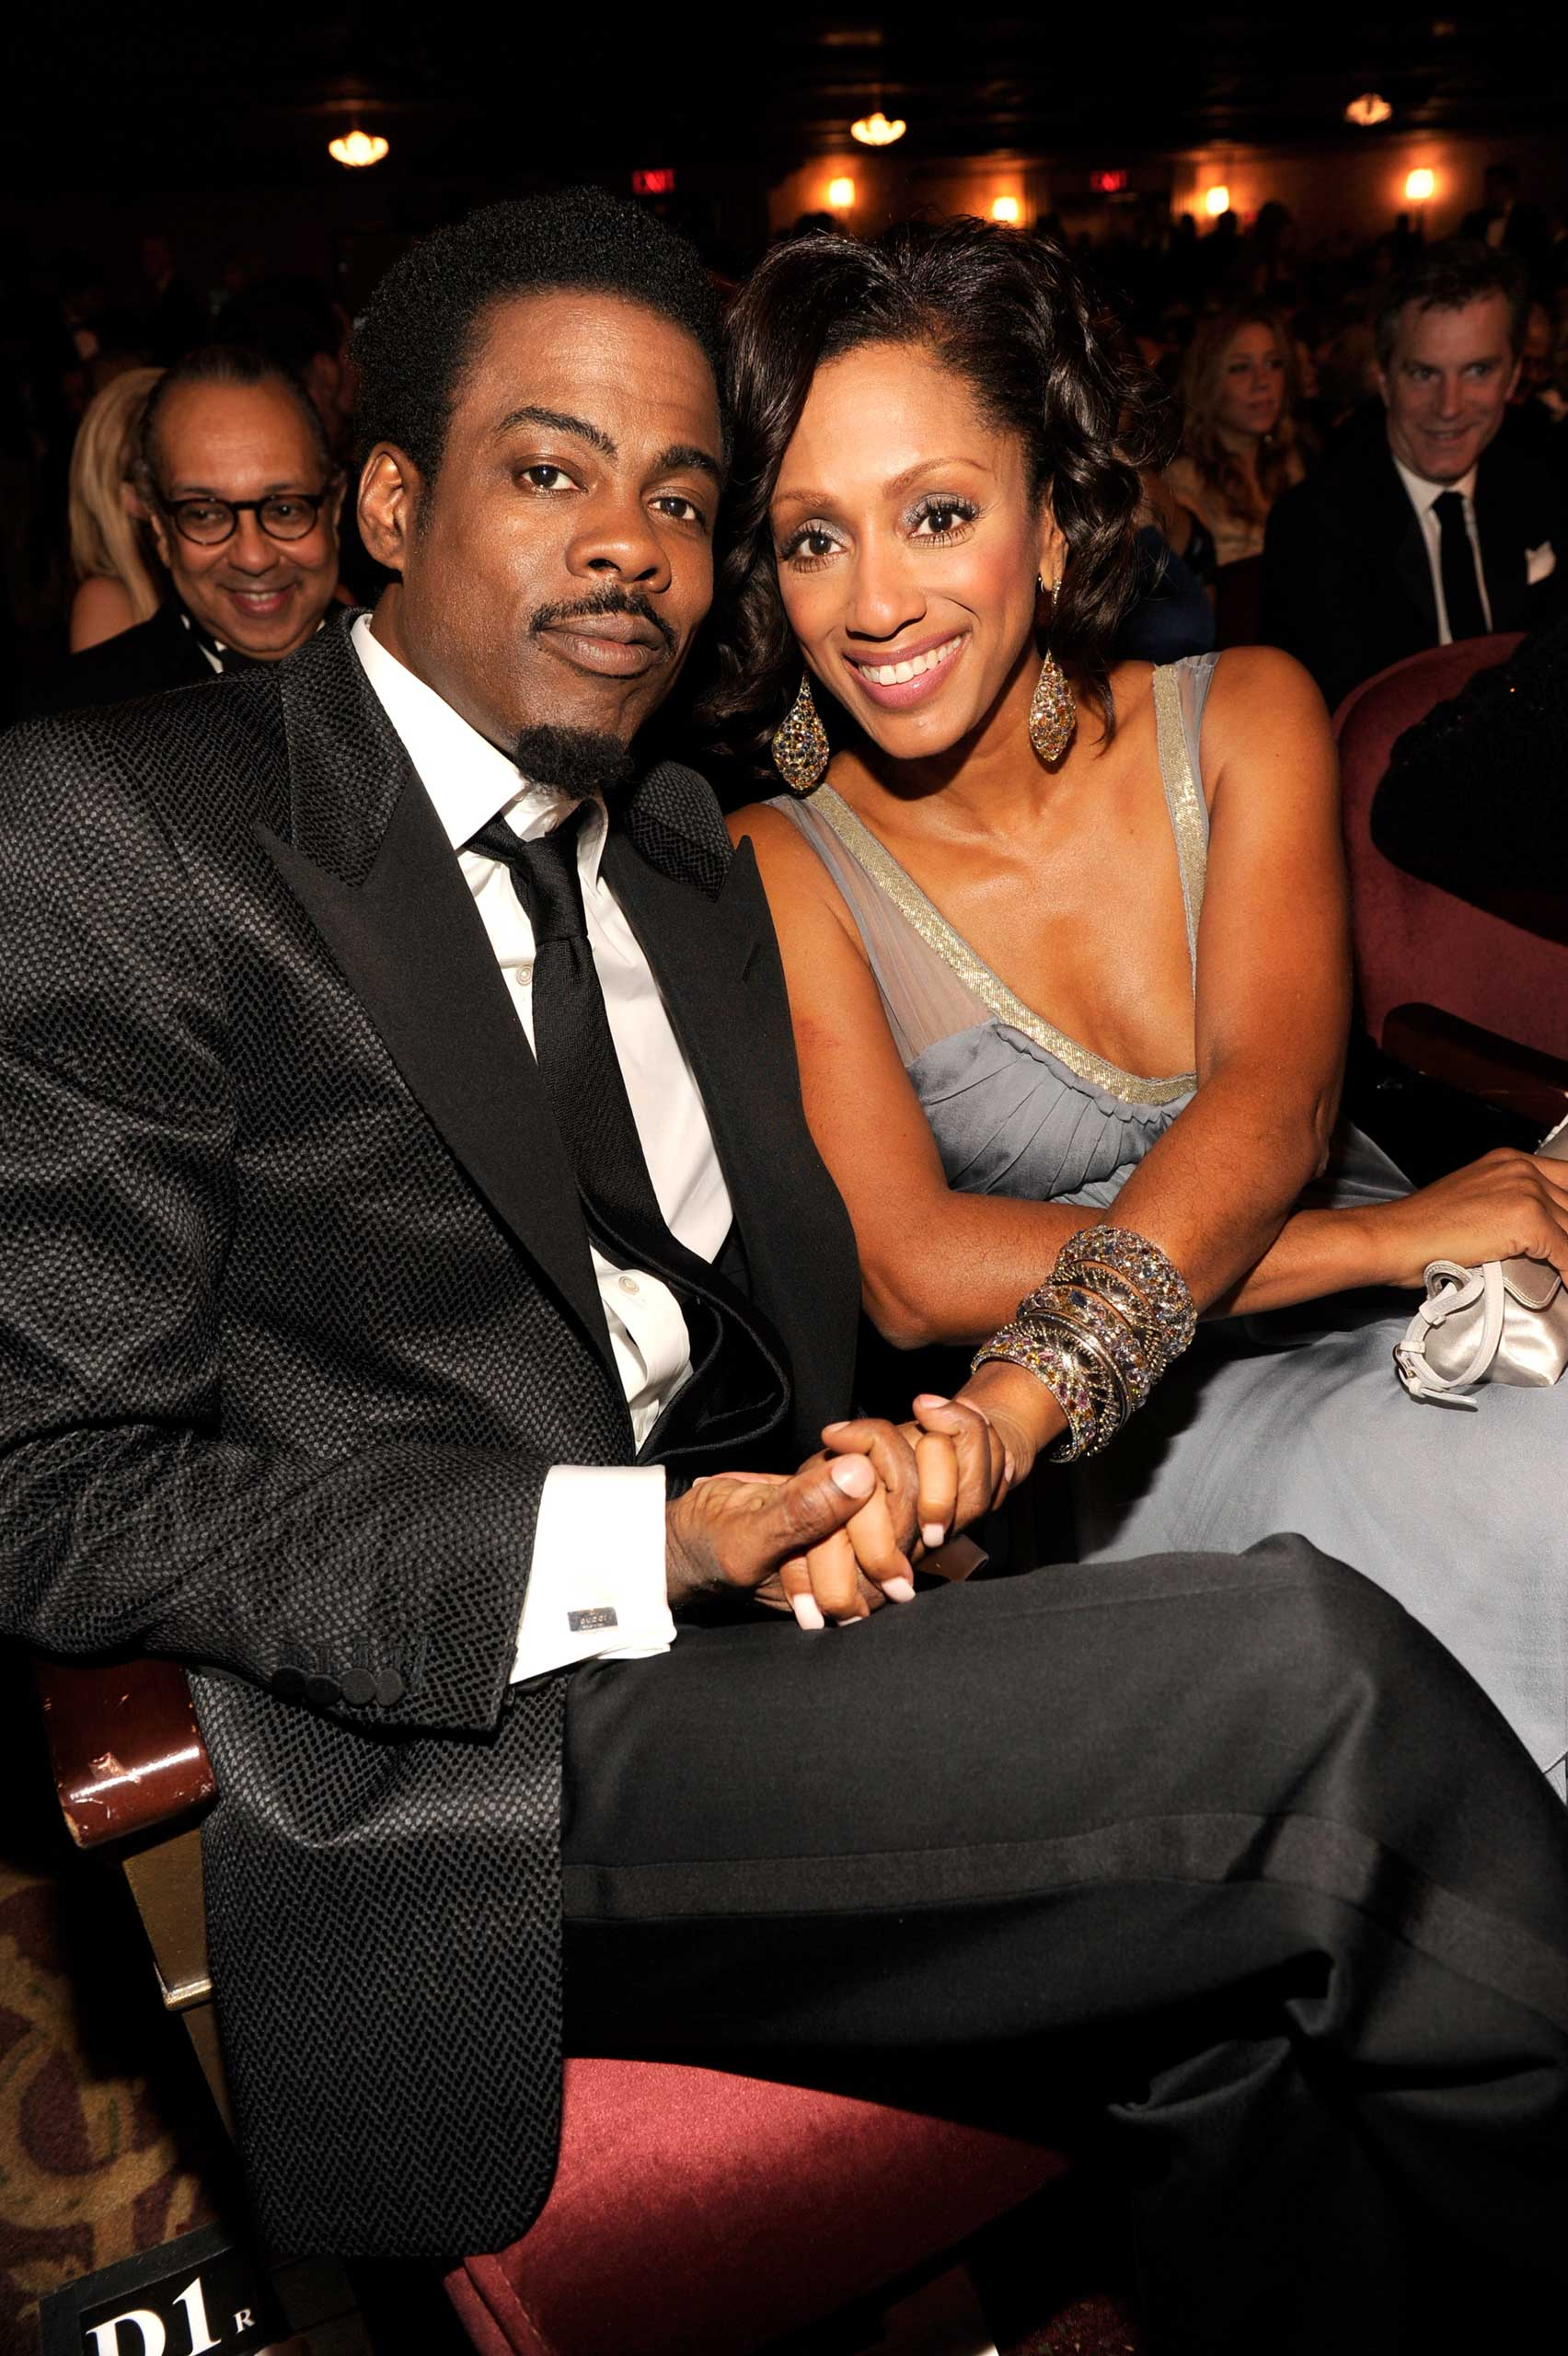 Chris Rock and Malaak Compton Rock at the 65th Annual Tony Awards at the Beacon Theatre on June 12, 2011 in New York City.